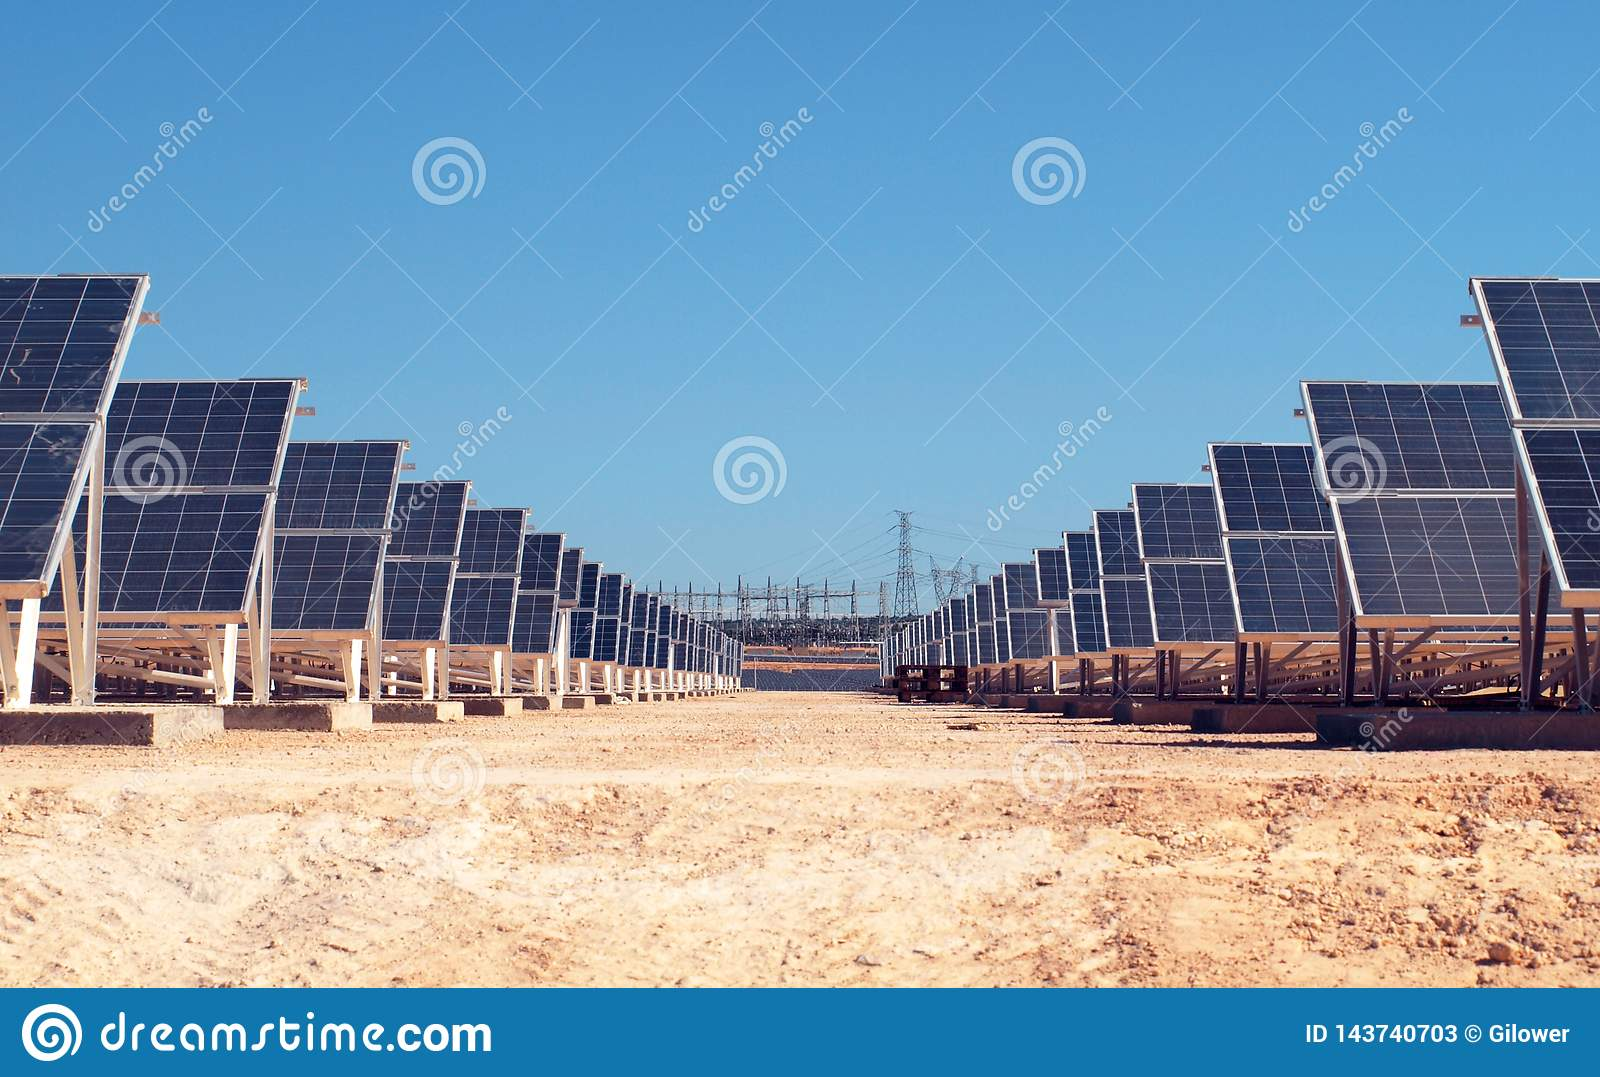 Solar field with electric power station in the background.